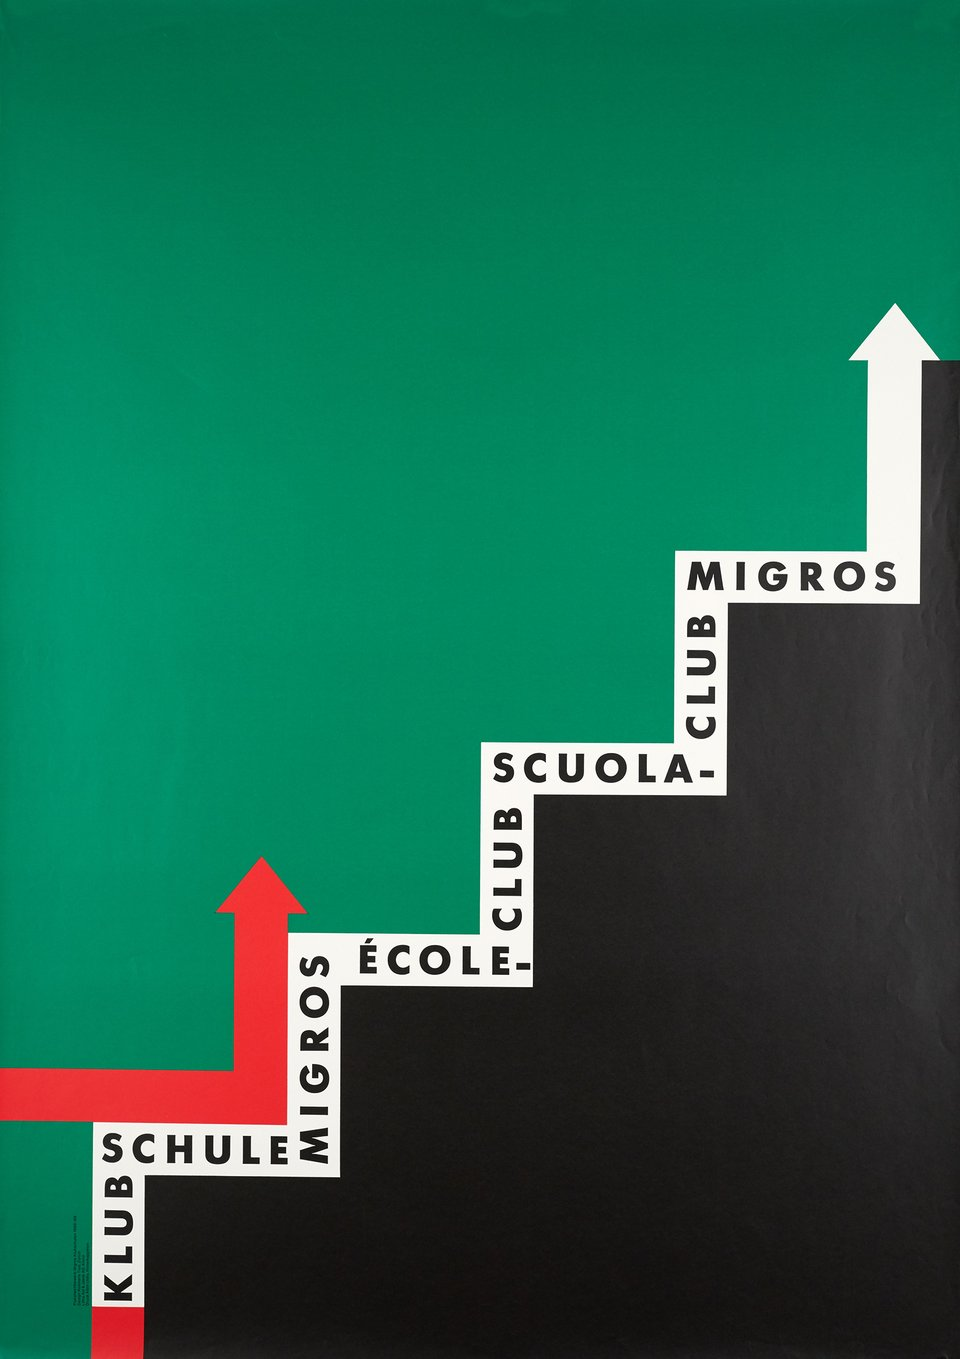 Klubschule Migros, Ecole-Club, Scuola-Club Migros – Affiche ancienne – RosMarie TISSI – 1988